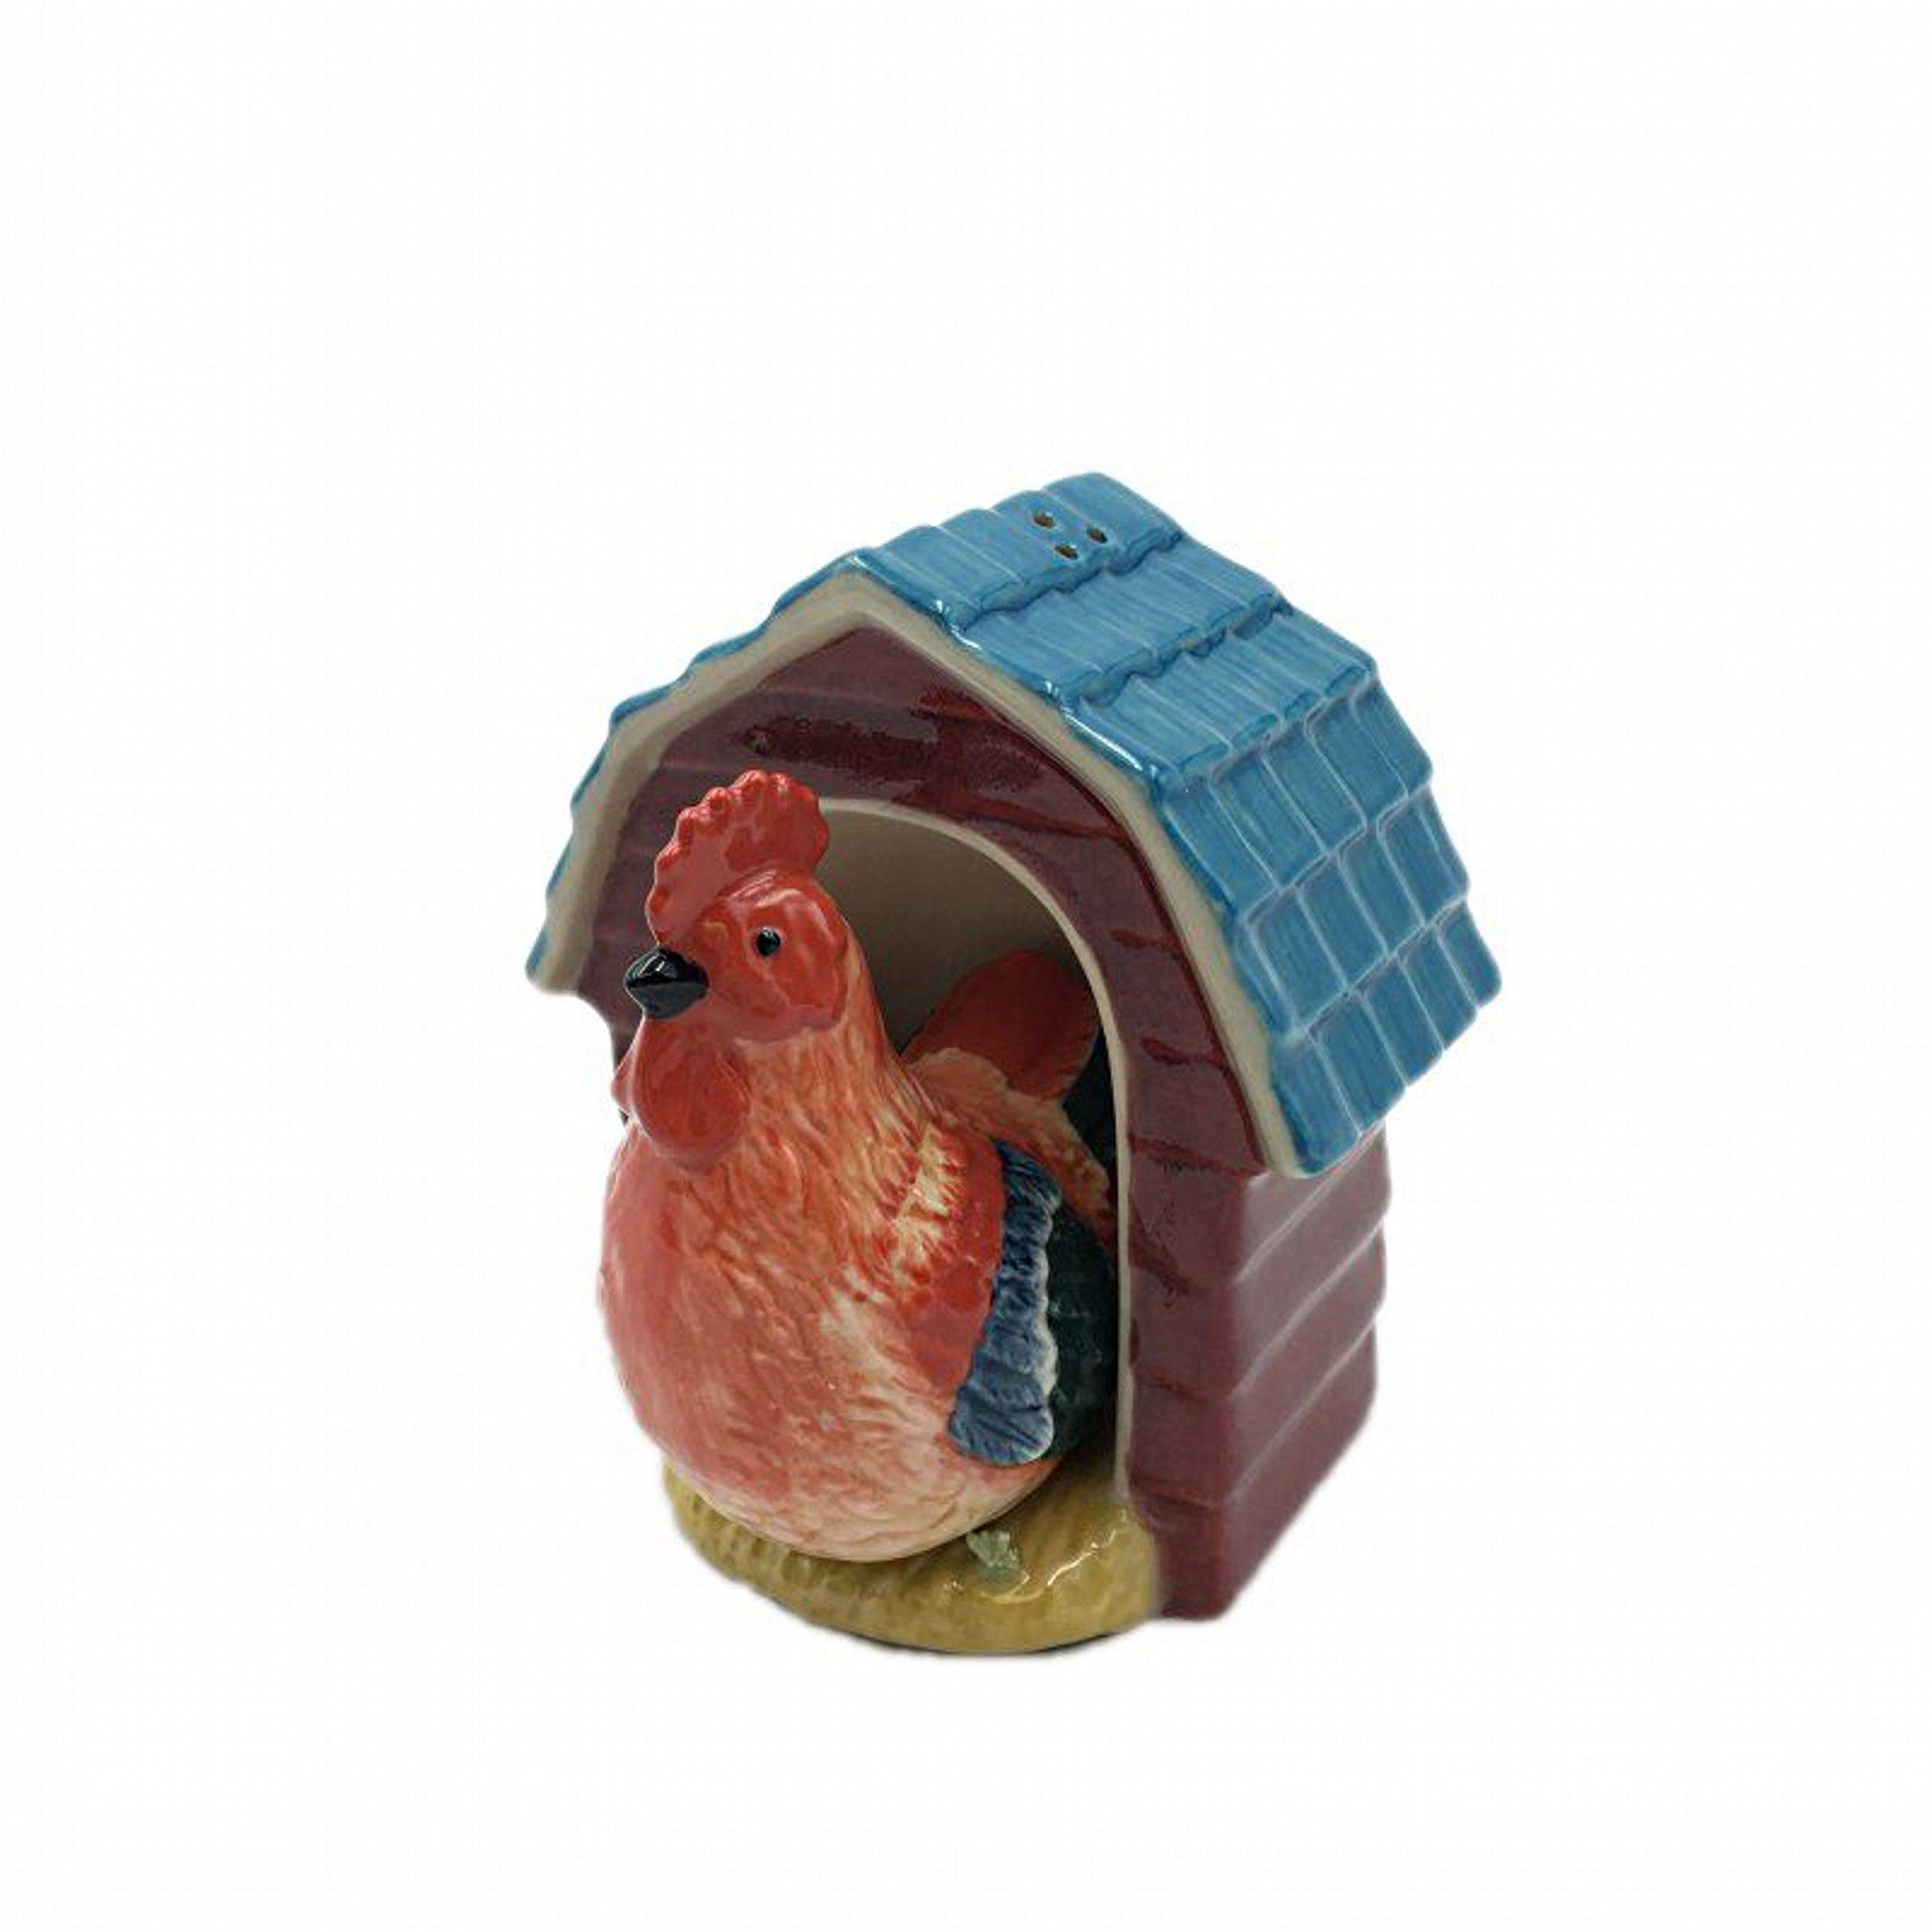 Cosmos Gifts Rooster in Coop Ceramic Salt and Pepper Shakers Farm Animals Bird 20772 New